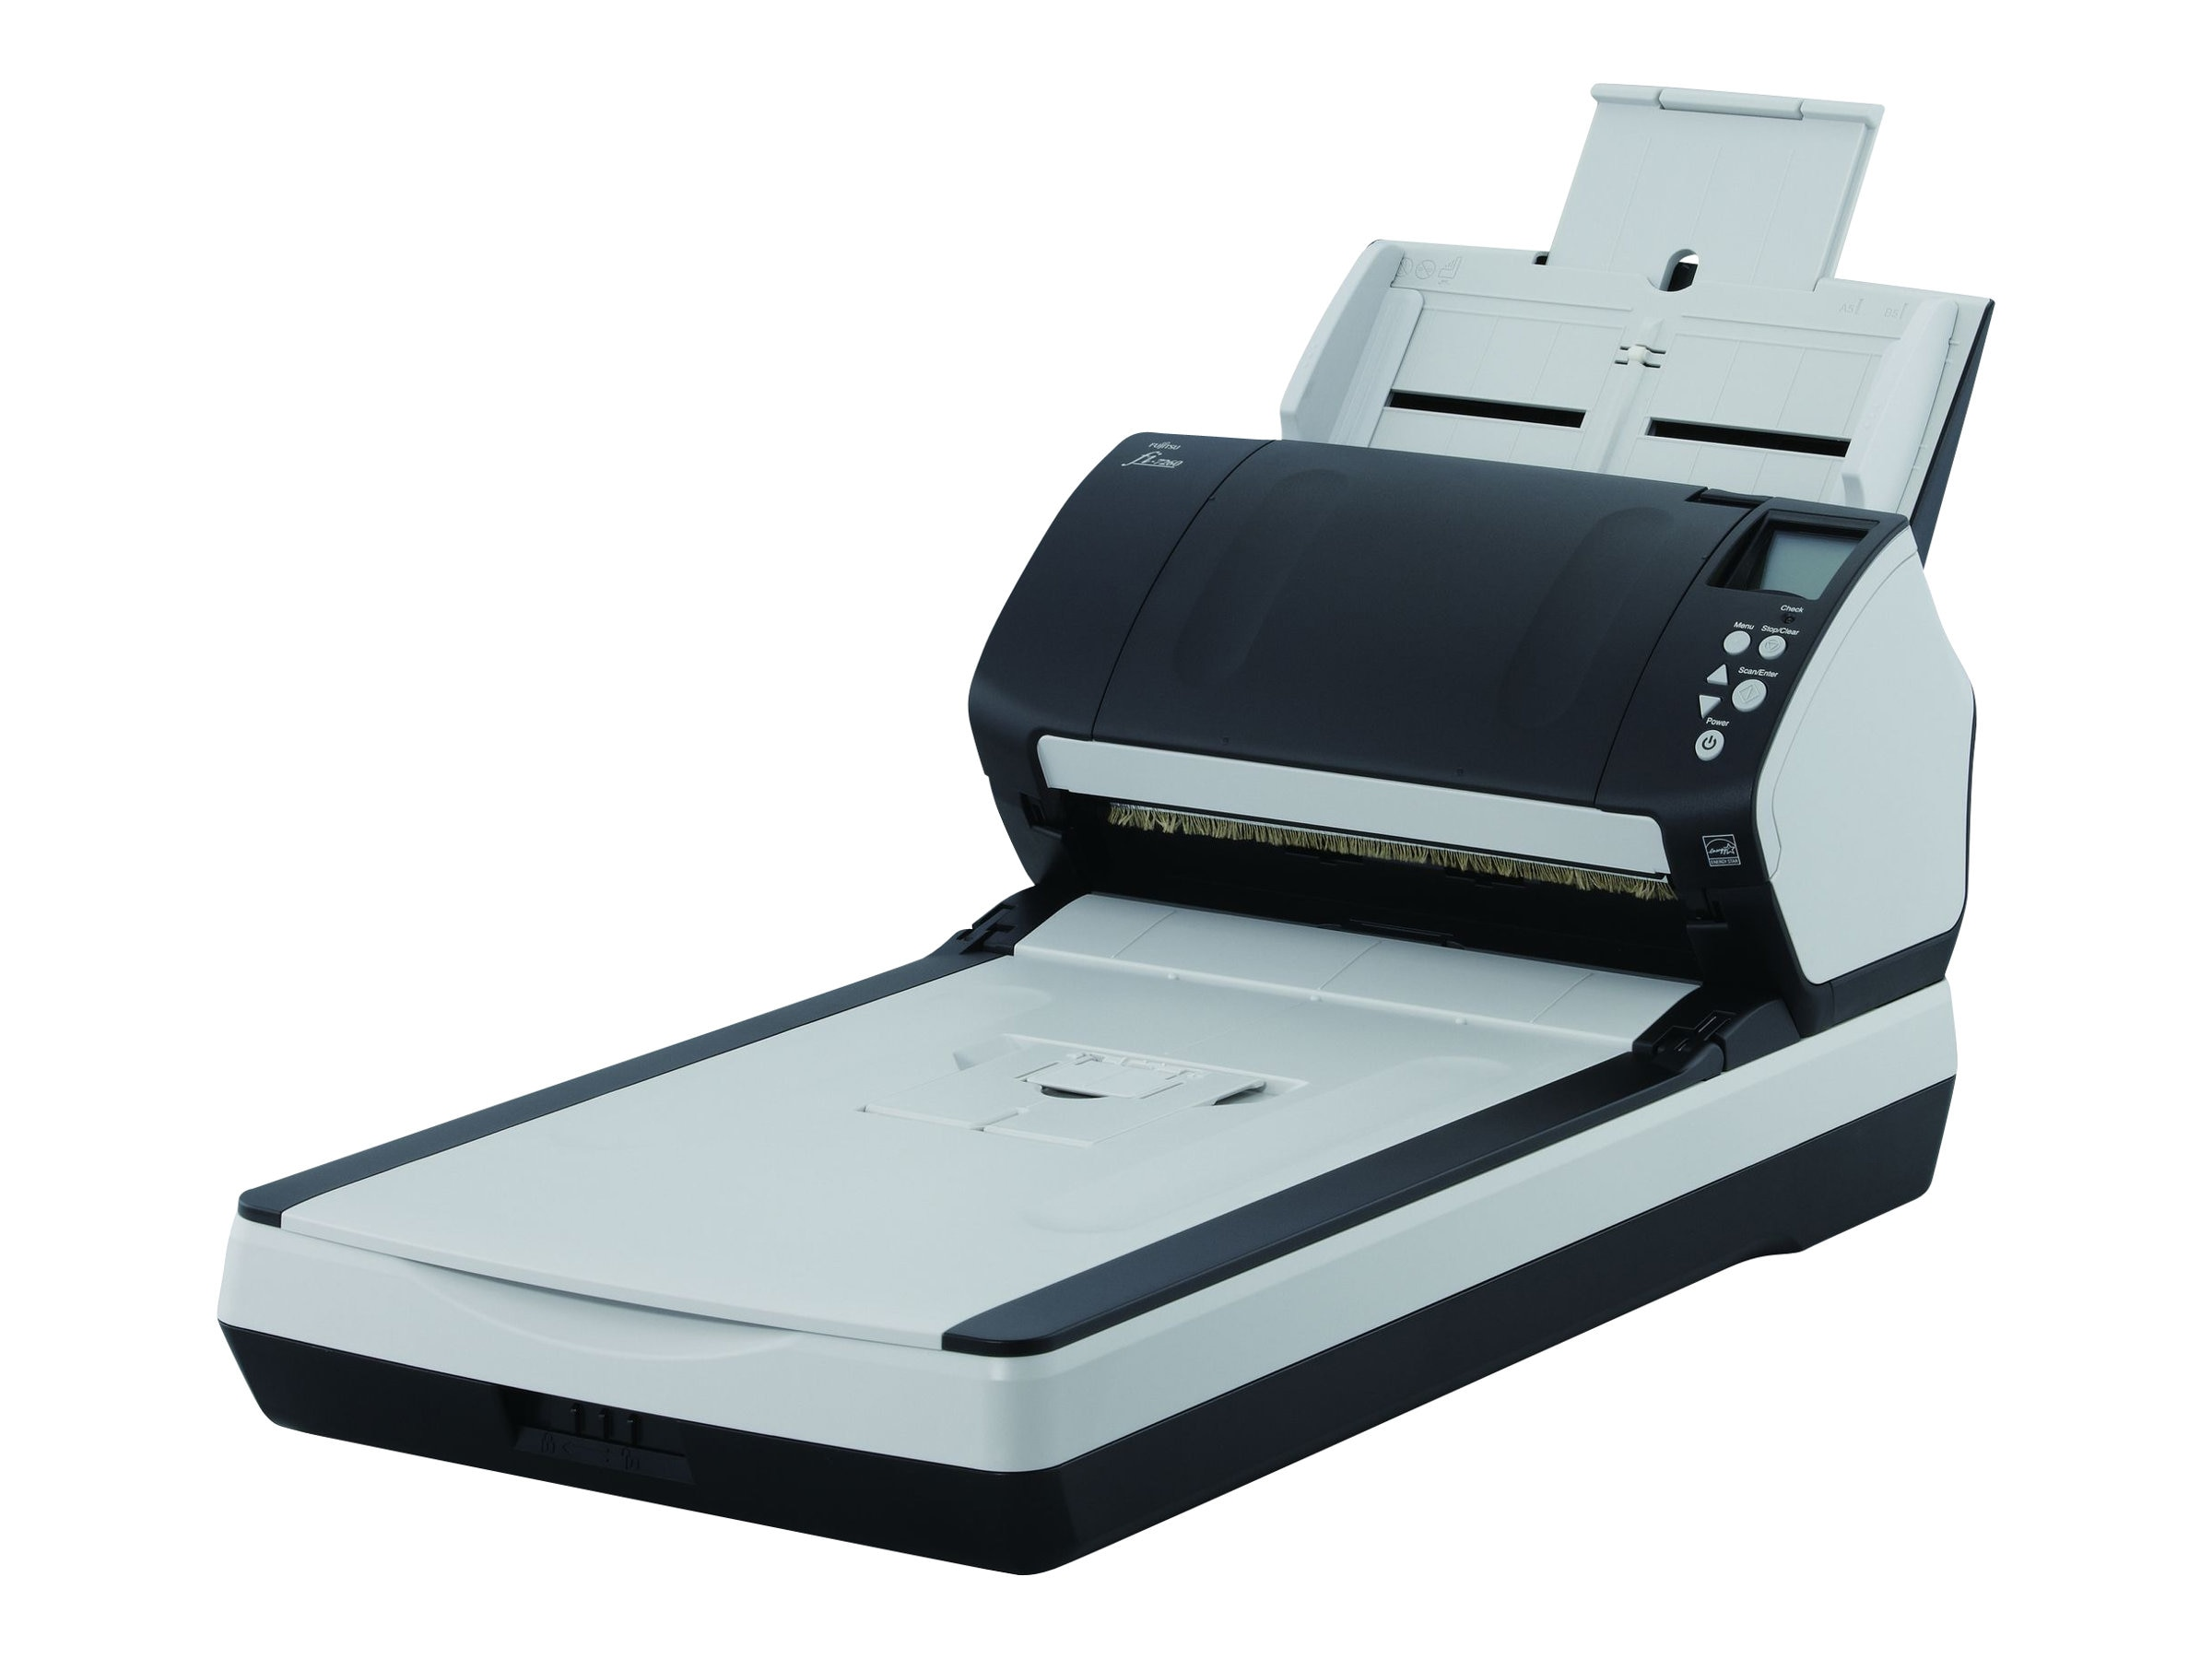 Fujitsu FI-7280 Color Duplex Sheetfed Scanner (replaces fi-6240z), PA03670-B505, 16501002, Scanners